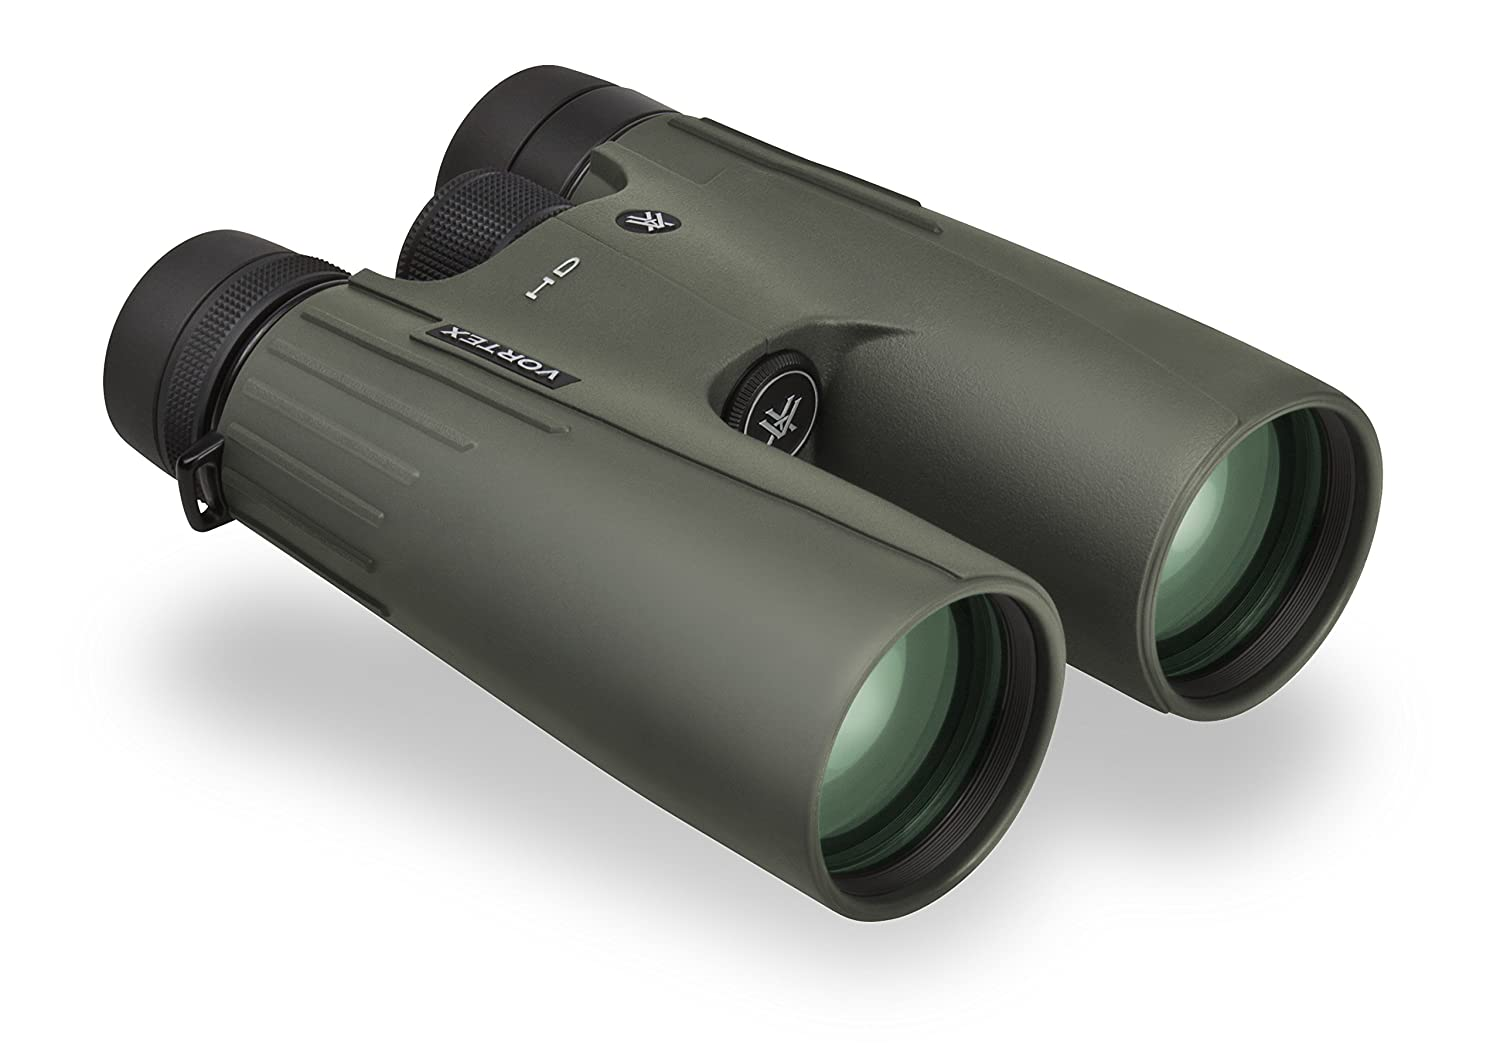 Vortex optics viper hd fernglas grün 15 x 50 cm: amazon.de: sport